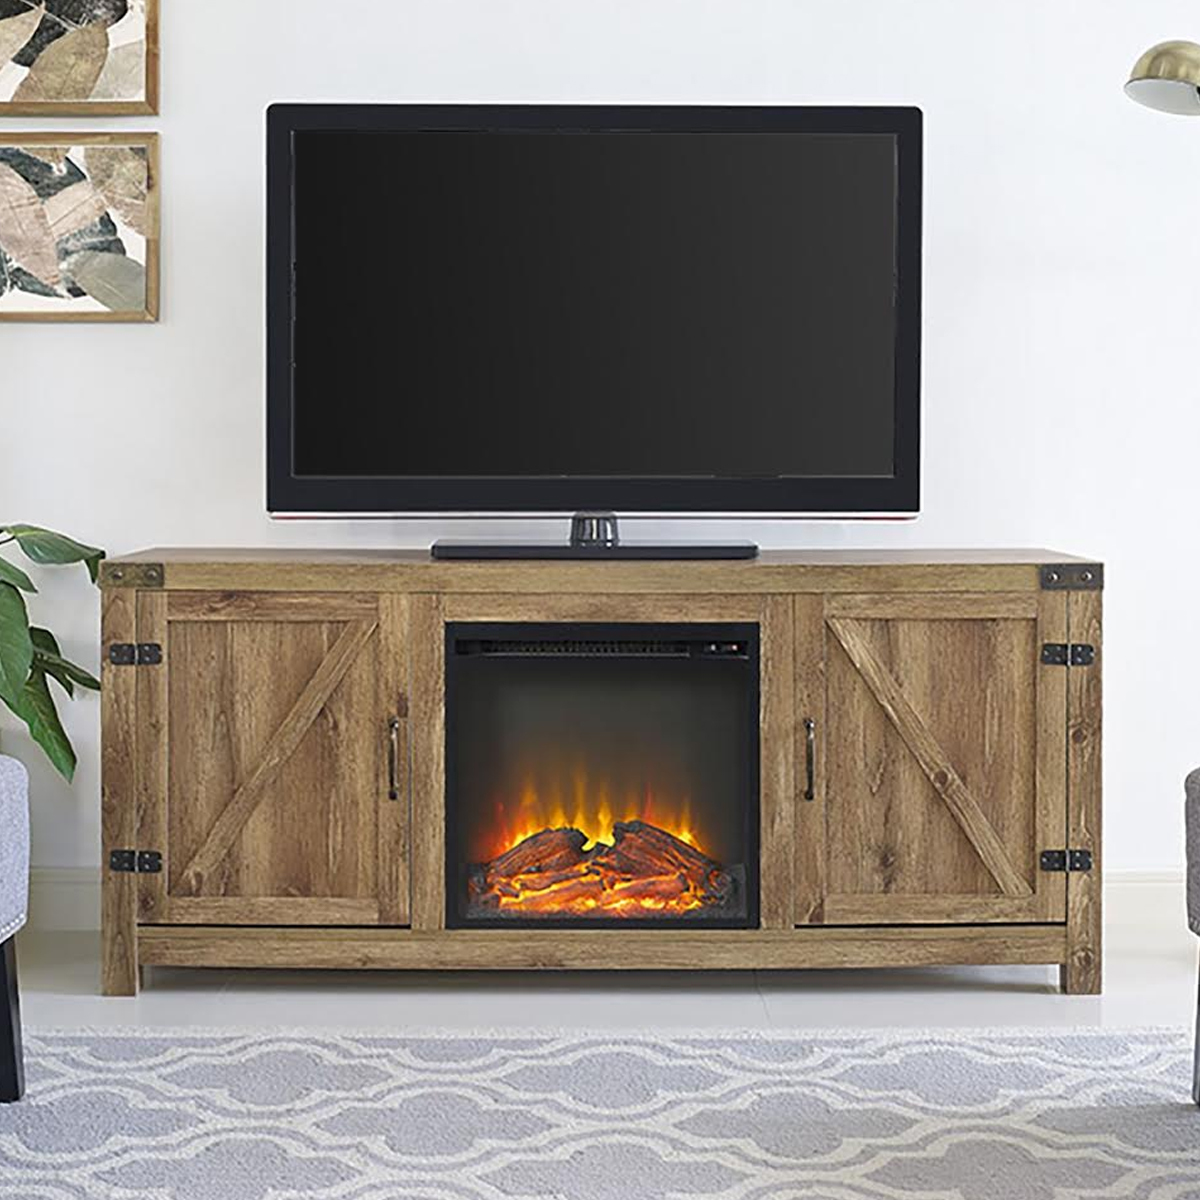 Barn door fireplace entertainment center photo